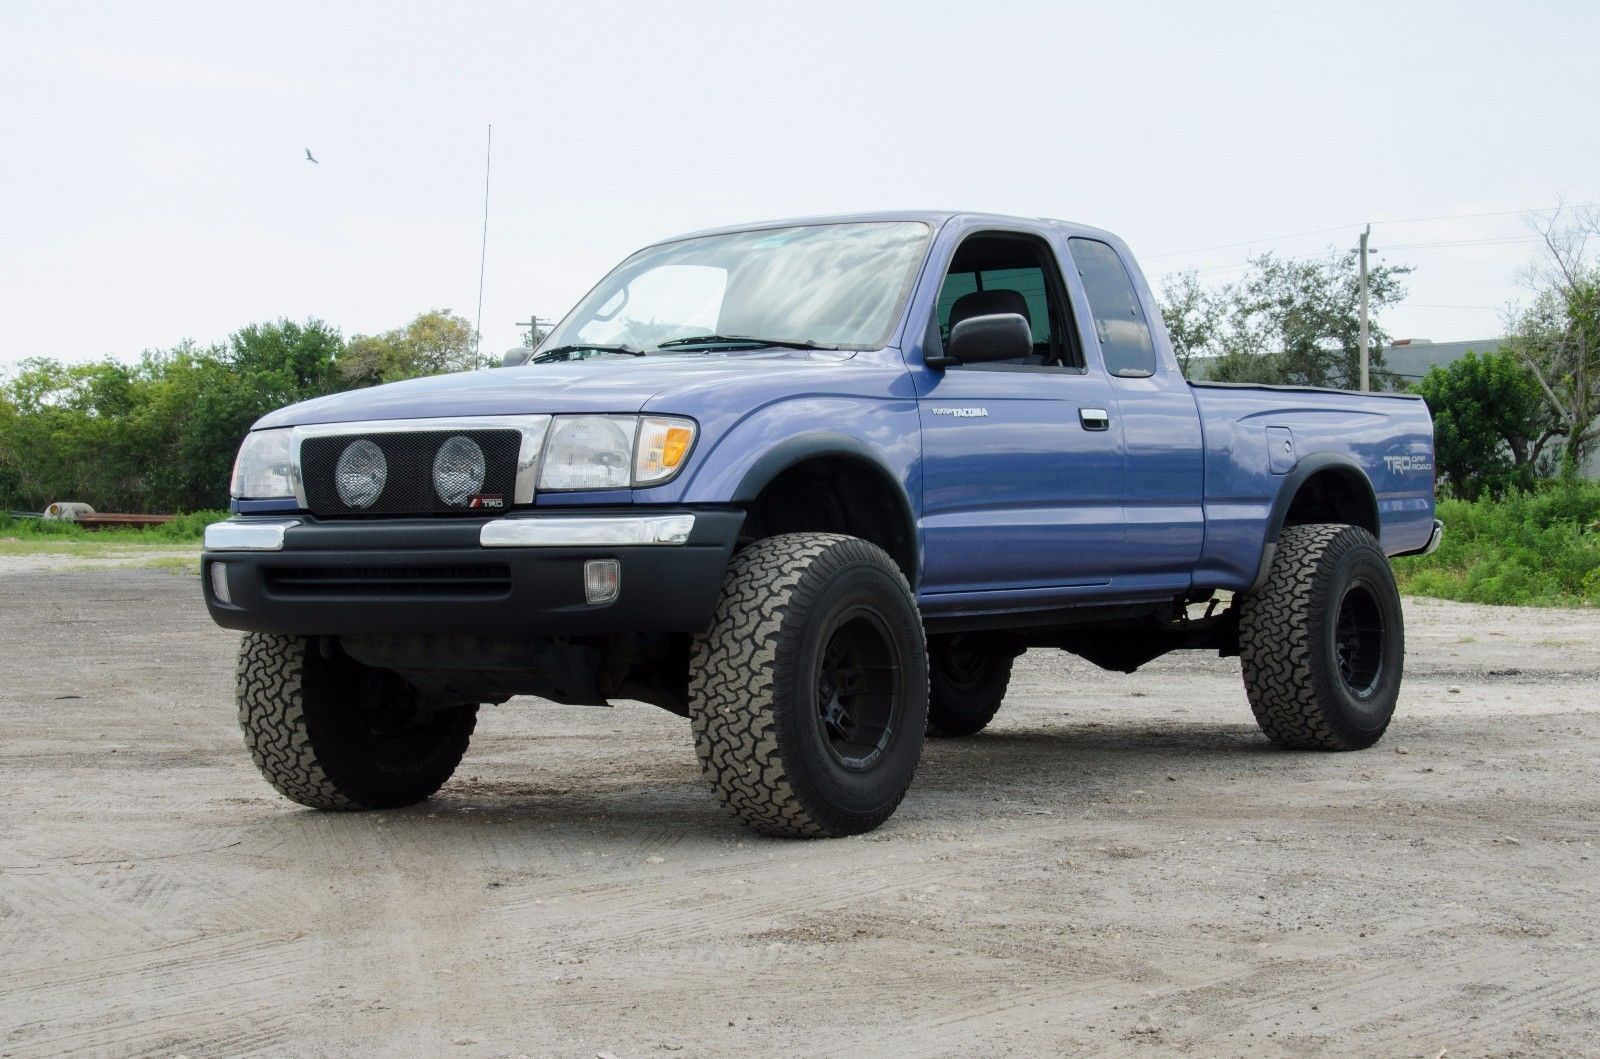 offroad package 1999 toyota tacoma trd 4x4 lifted lifted trucks for sale pinterest toyota. Black Bedroom Furniture Sets. Home Design Ideas